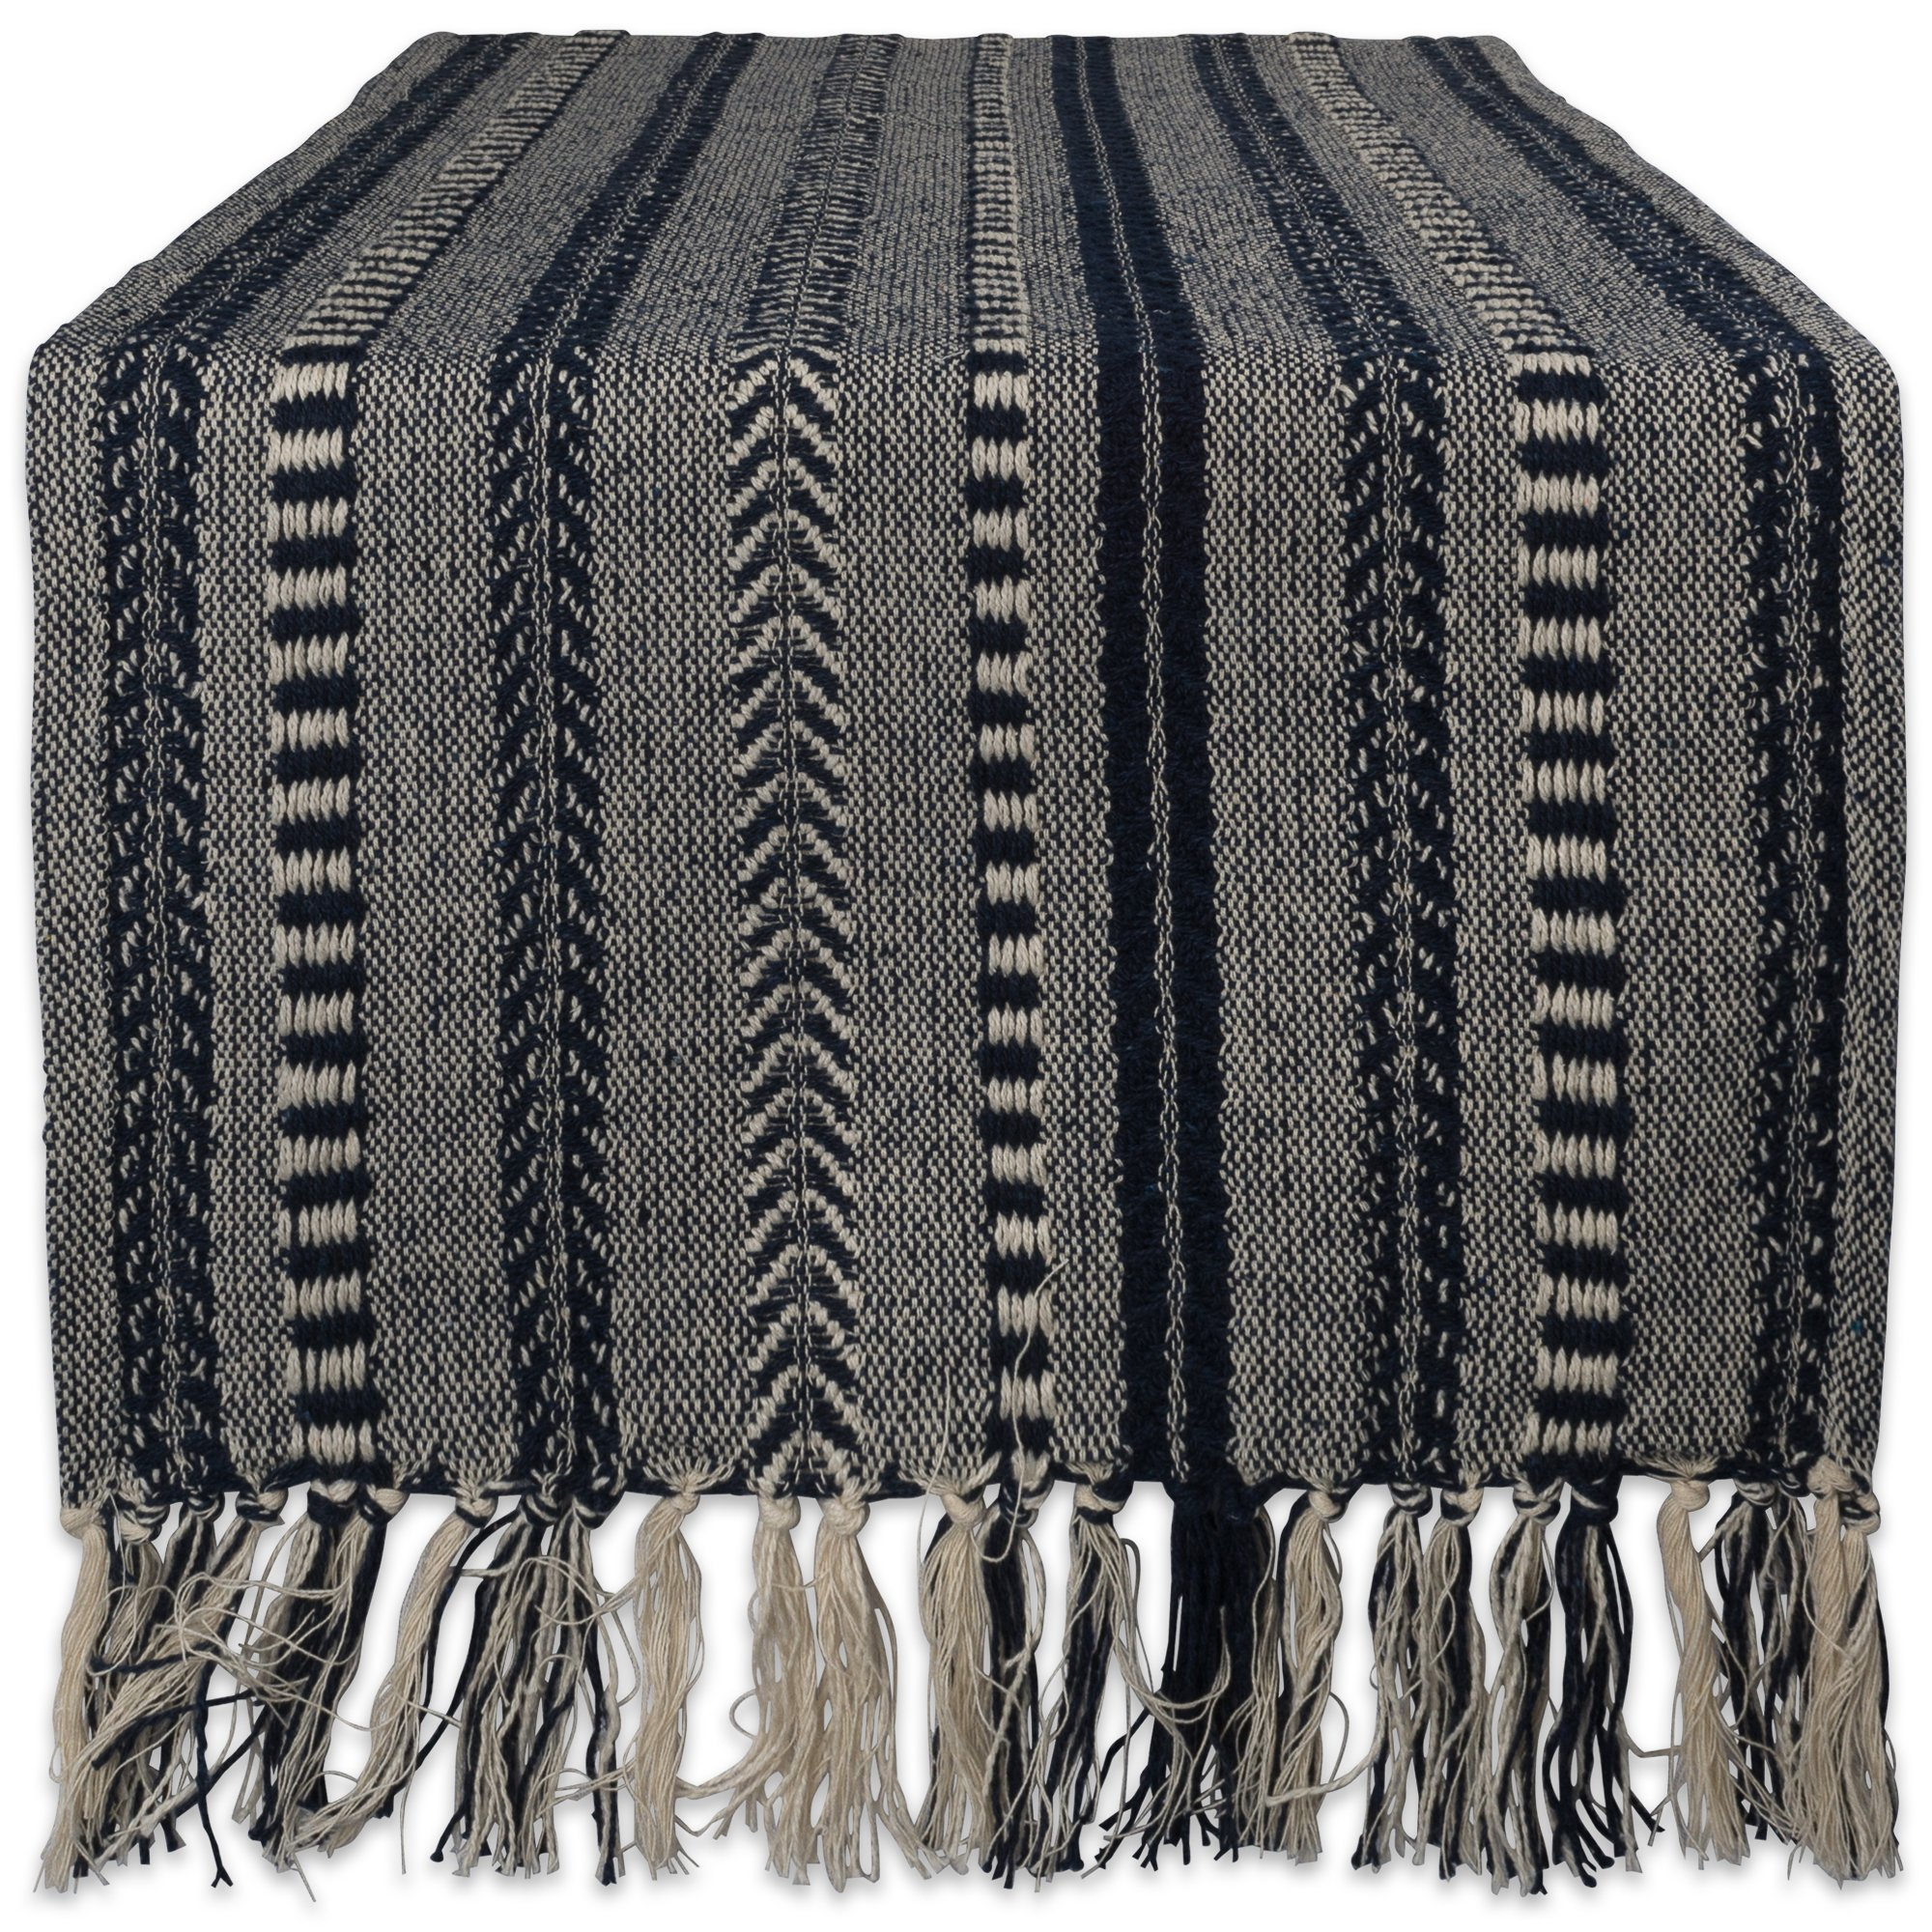 DII 15x72 Braided Cotton Table Runner, Navy Blue - Perfect for Summer, Holiday Parties and Everyday Use